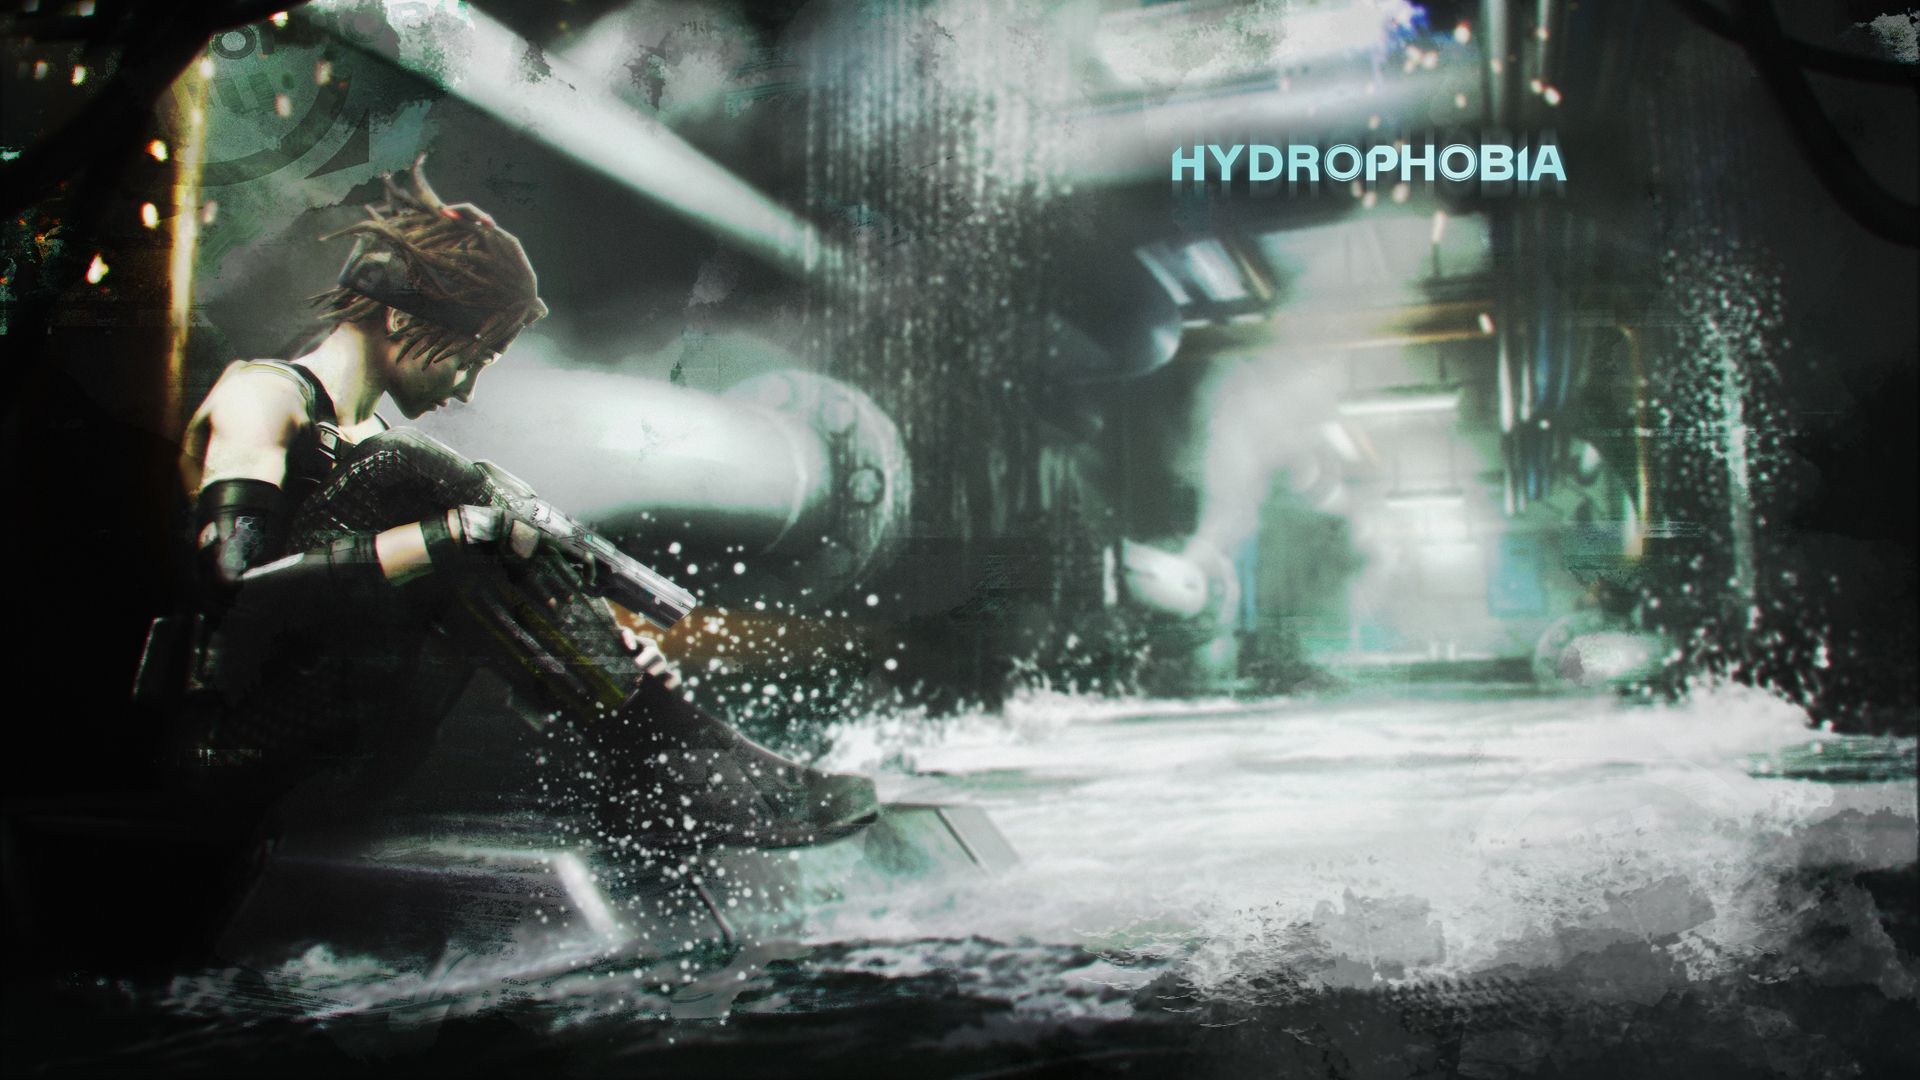 Hydrophobia Prophecy HD Wallpaper Background Image 1920x1080 1920x1080